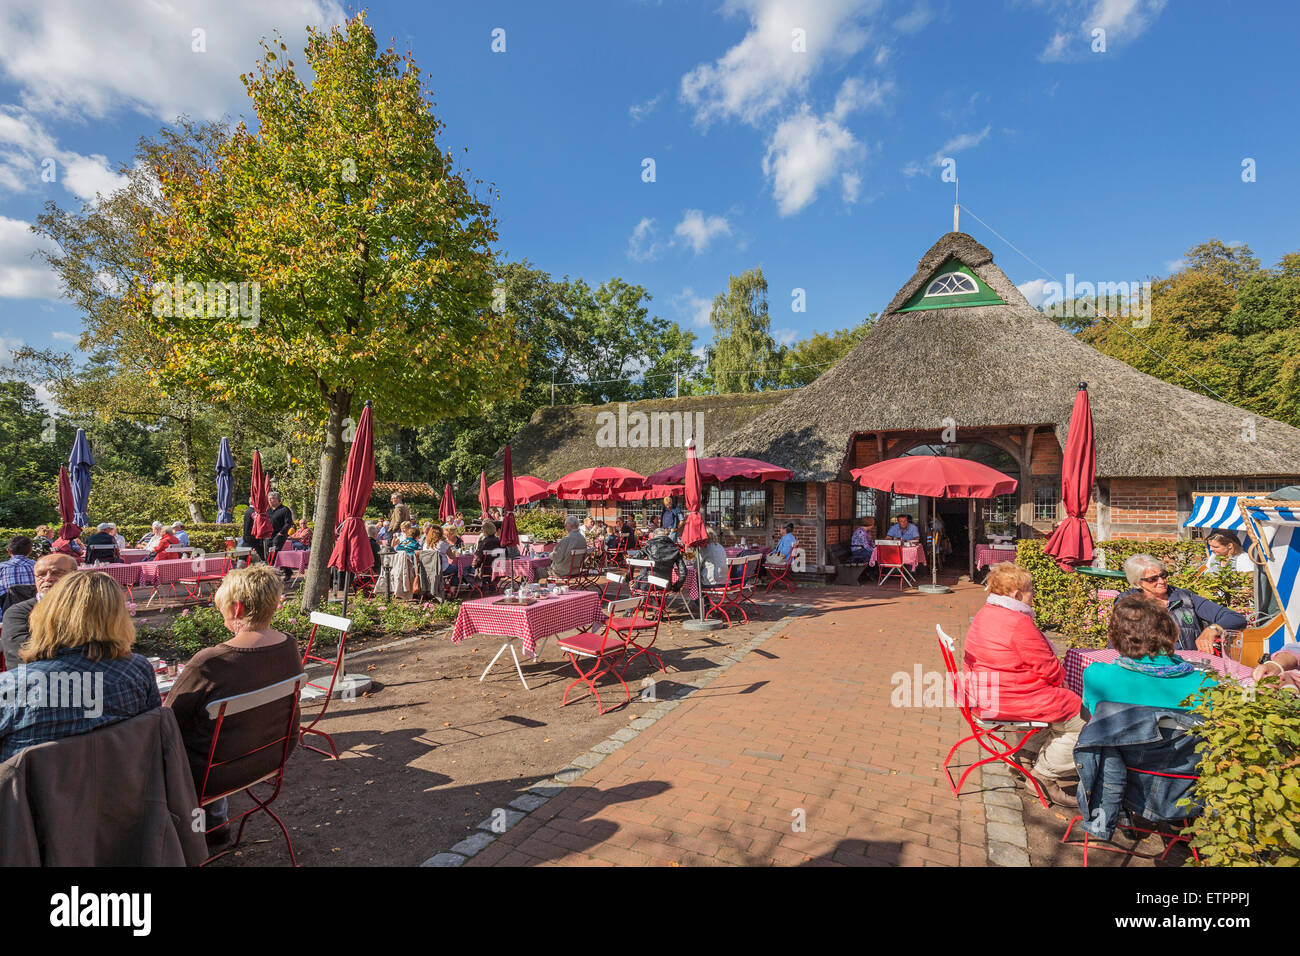 restaurant 39 f hrkroog 39 in dreibergen bad zwischenahn ammerland stock photo royalty free image. Black Bedroom Furniture Sets. Home Design Ideas